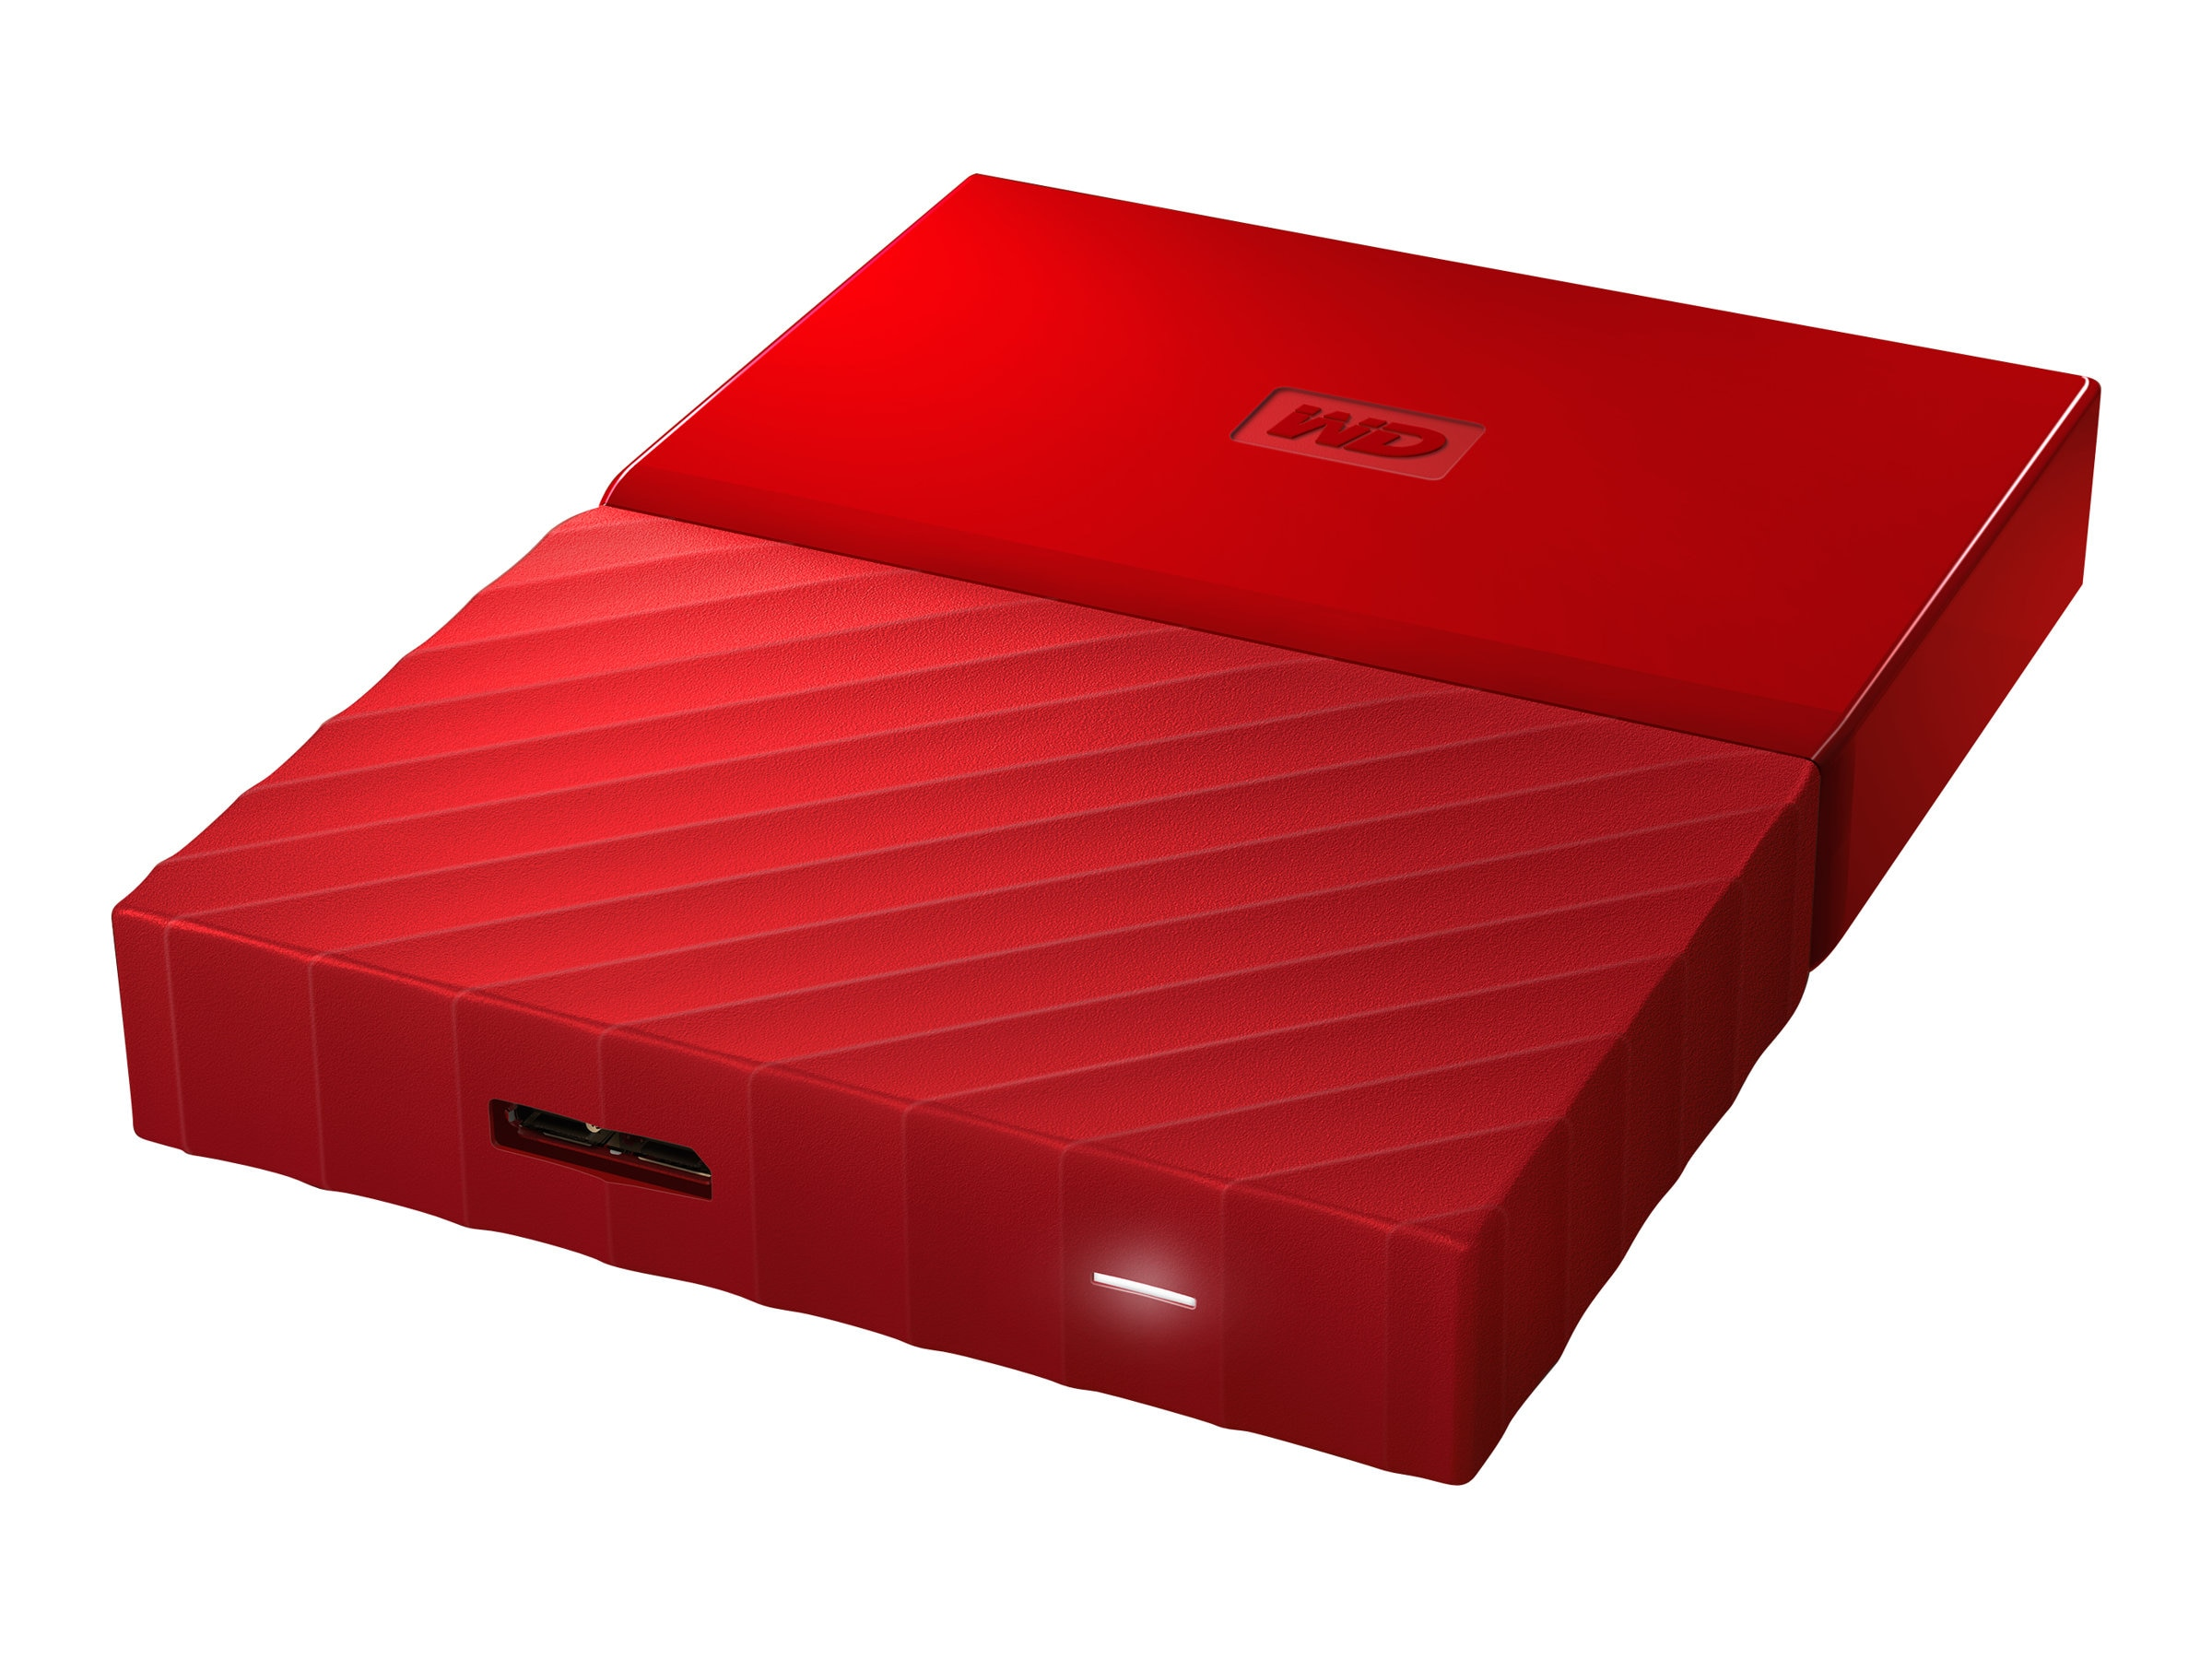 WD 2TB My Passport USB 3.0 Portable Hard Drive - Red, WDBYFT0020BRD-WESN